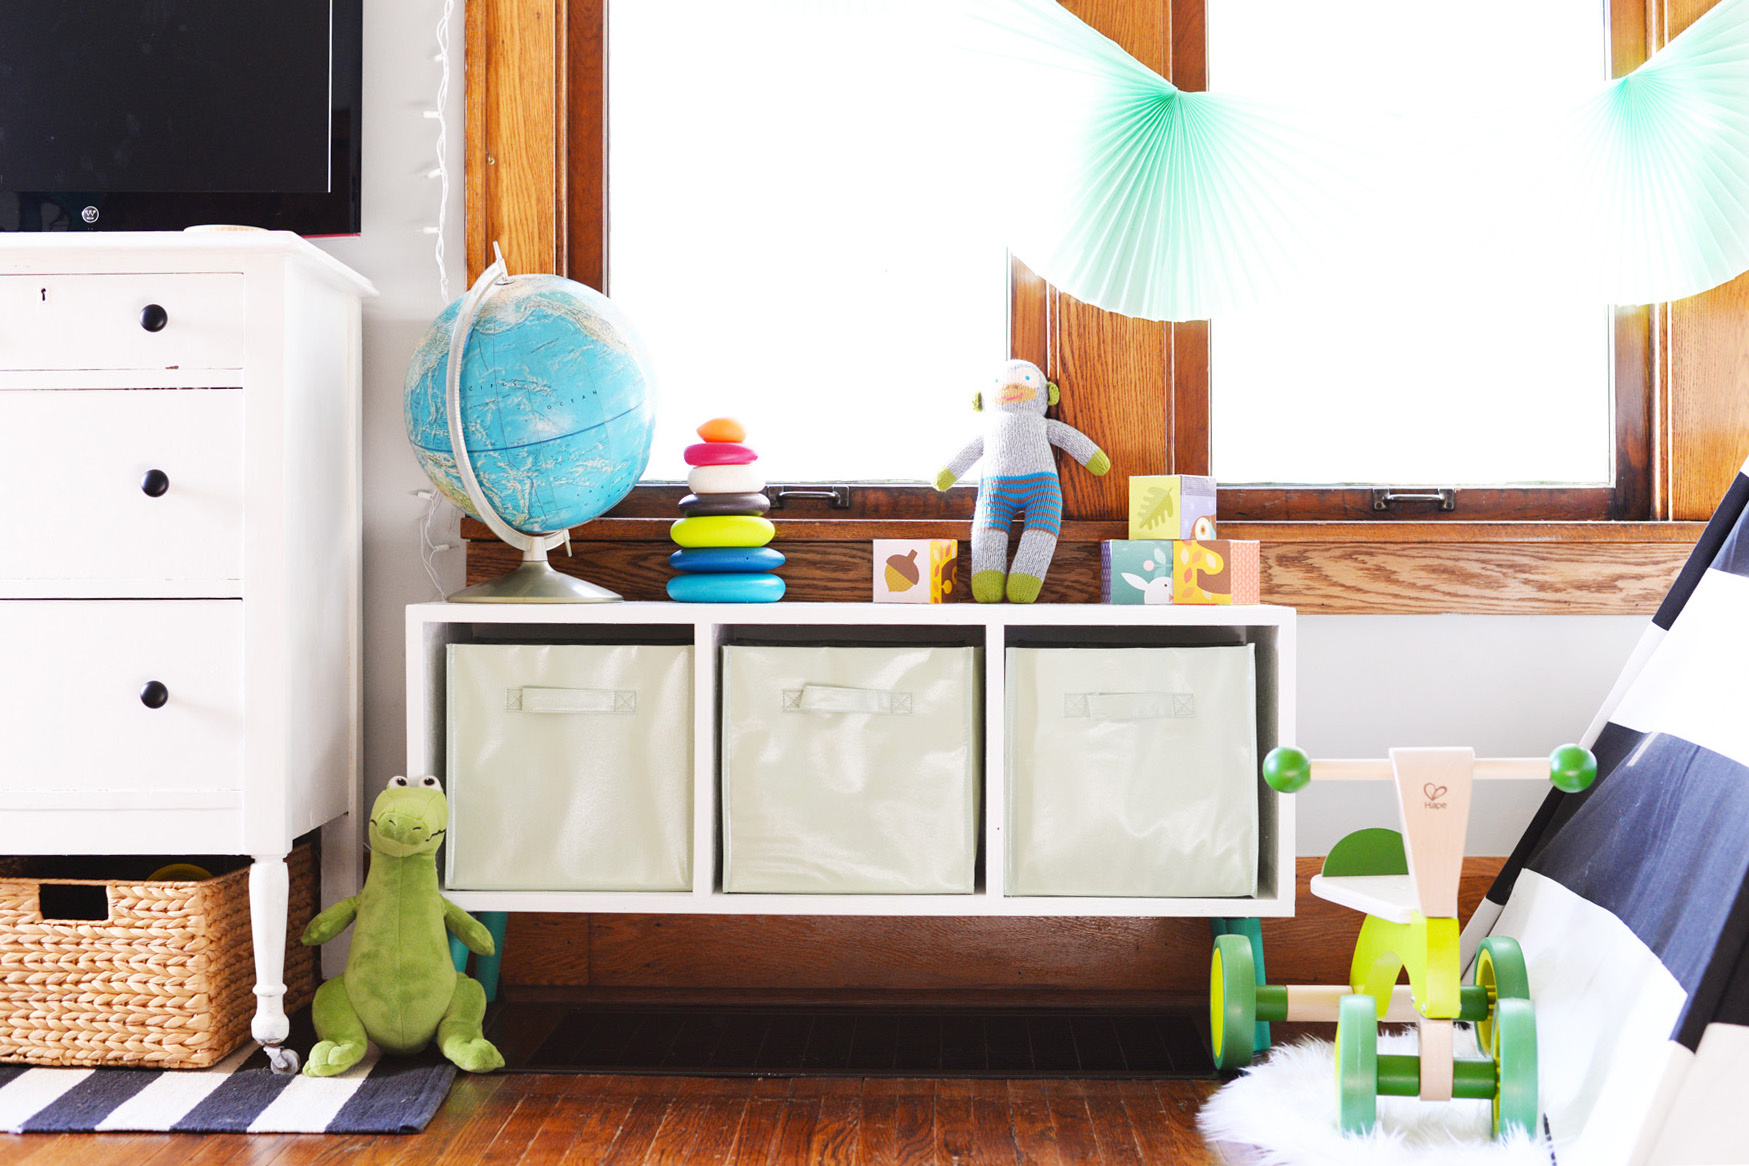 10 DIY Kids' Storage Ideas